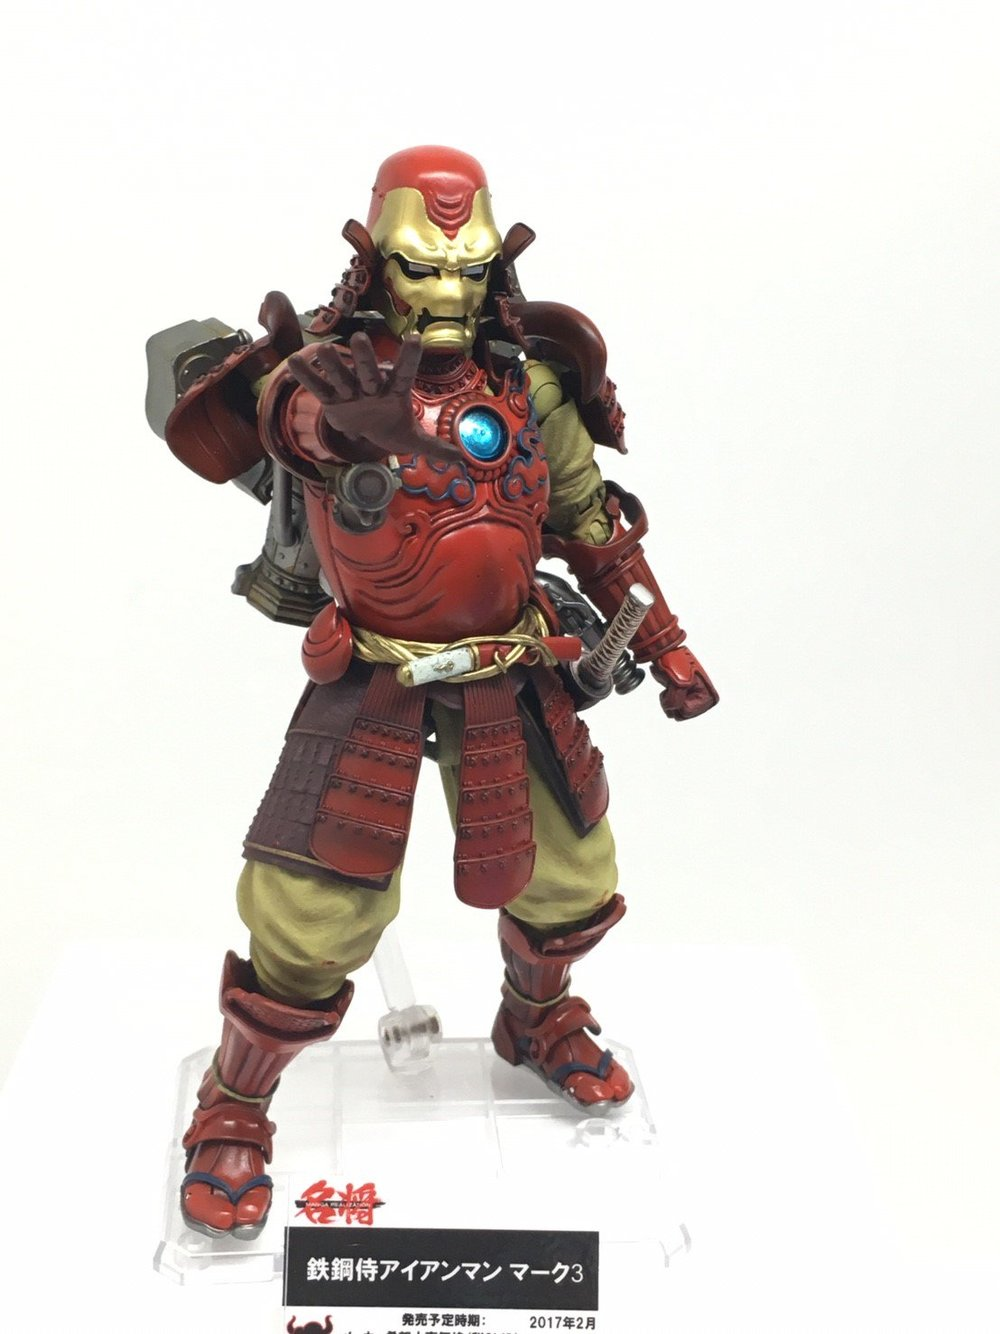 captain-america-and-iron-man-get-an-insane-looking-samurai-makeover2